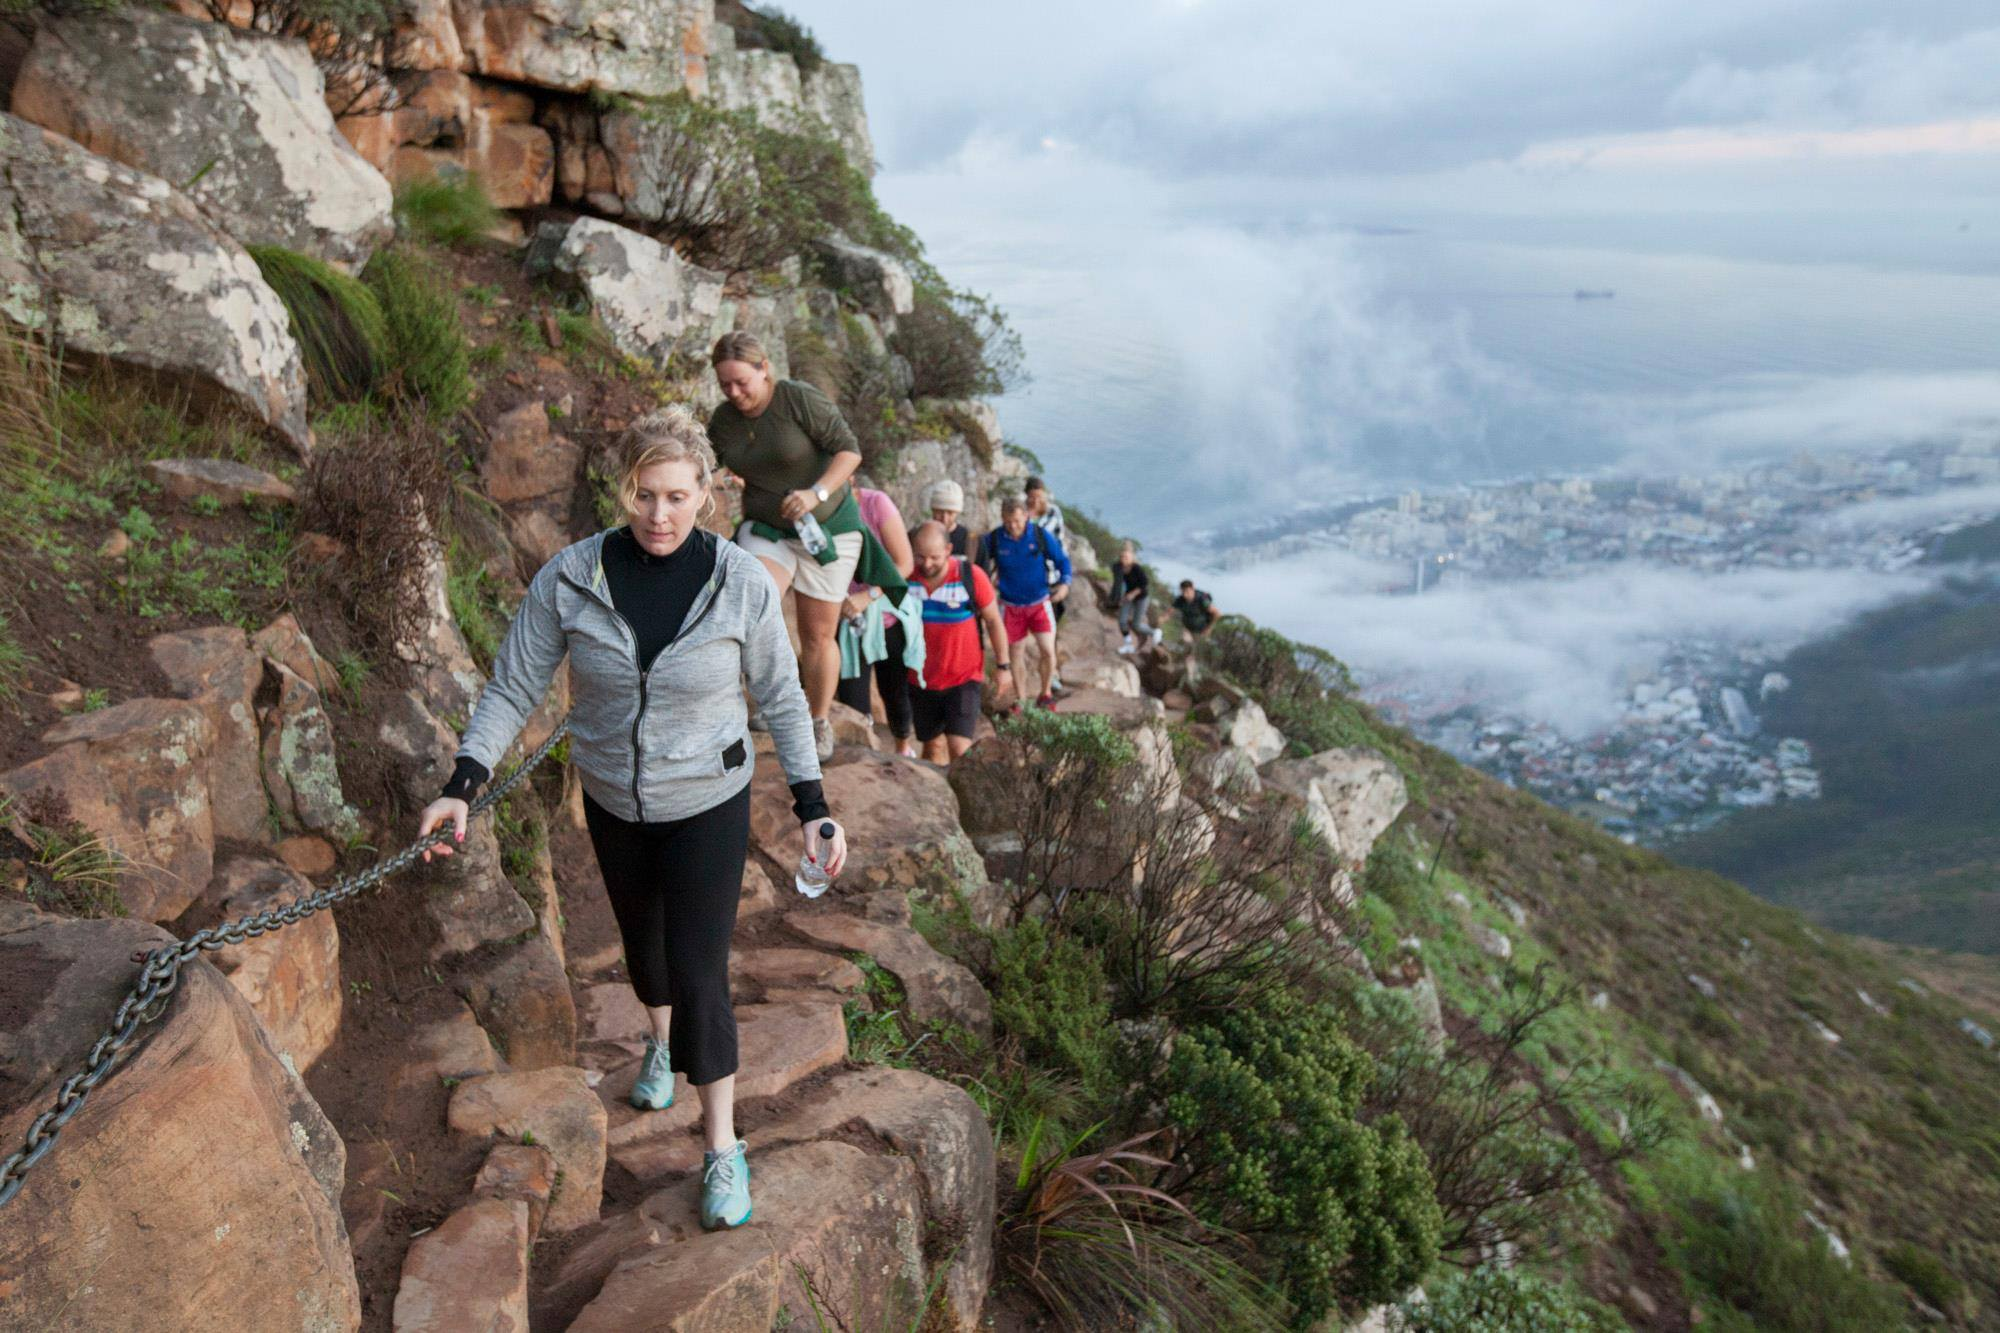 Hikers along one of Cape Town's mountain steep paths while hiking and climbing on safari